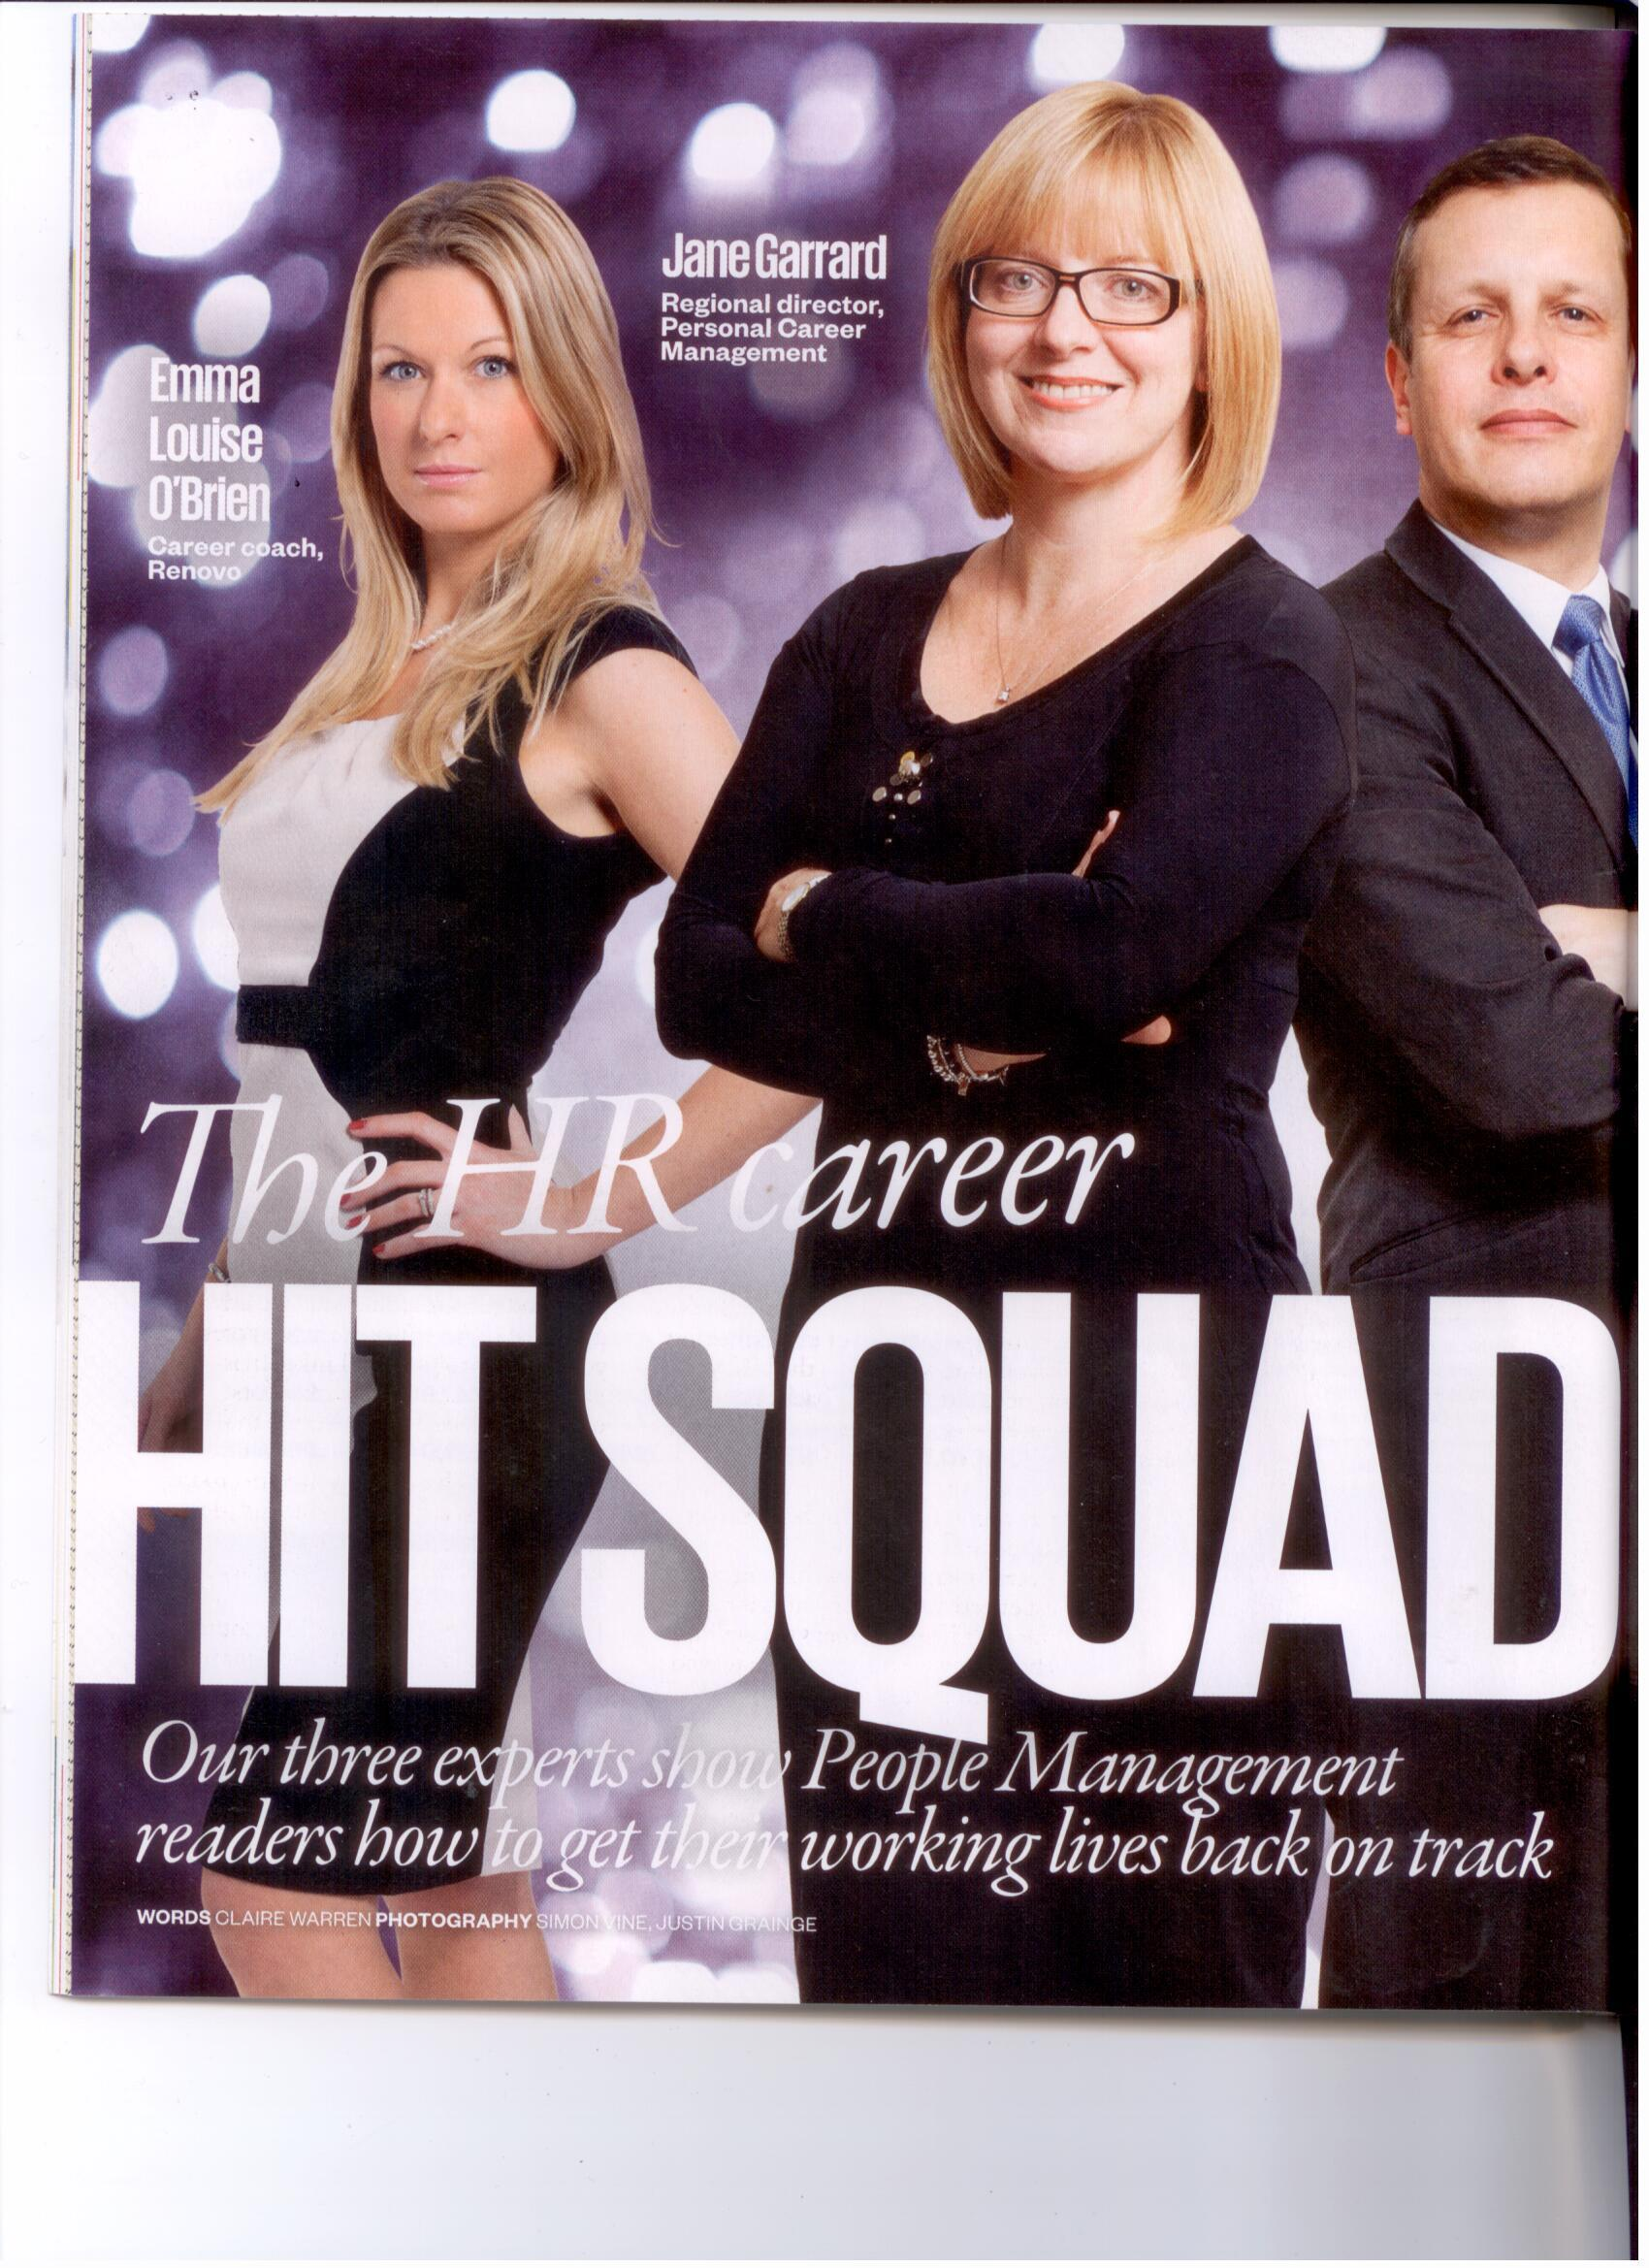 People Management: The HR career hit squad